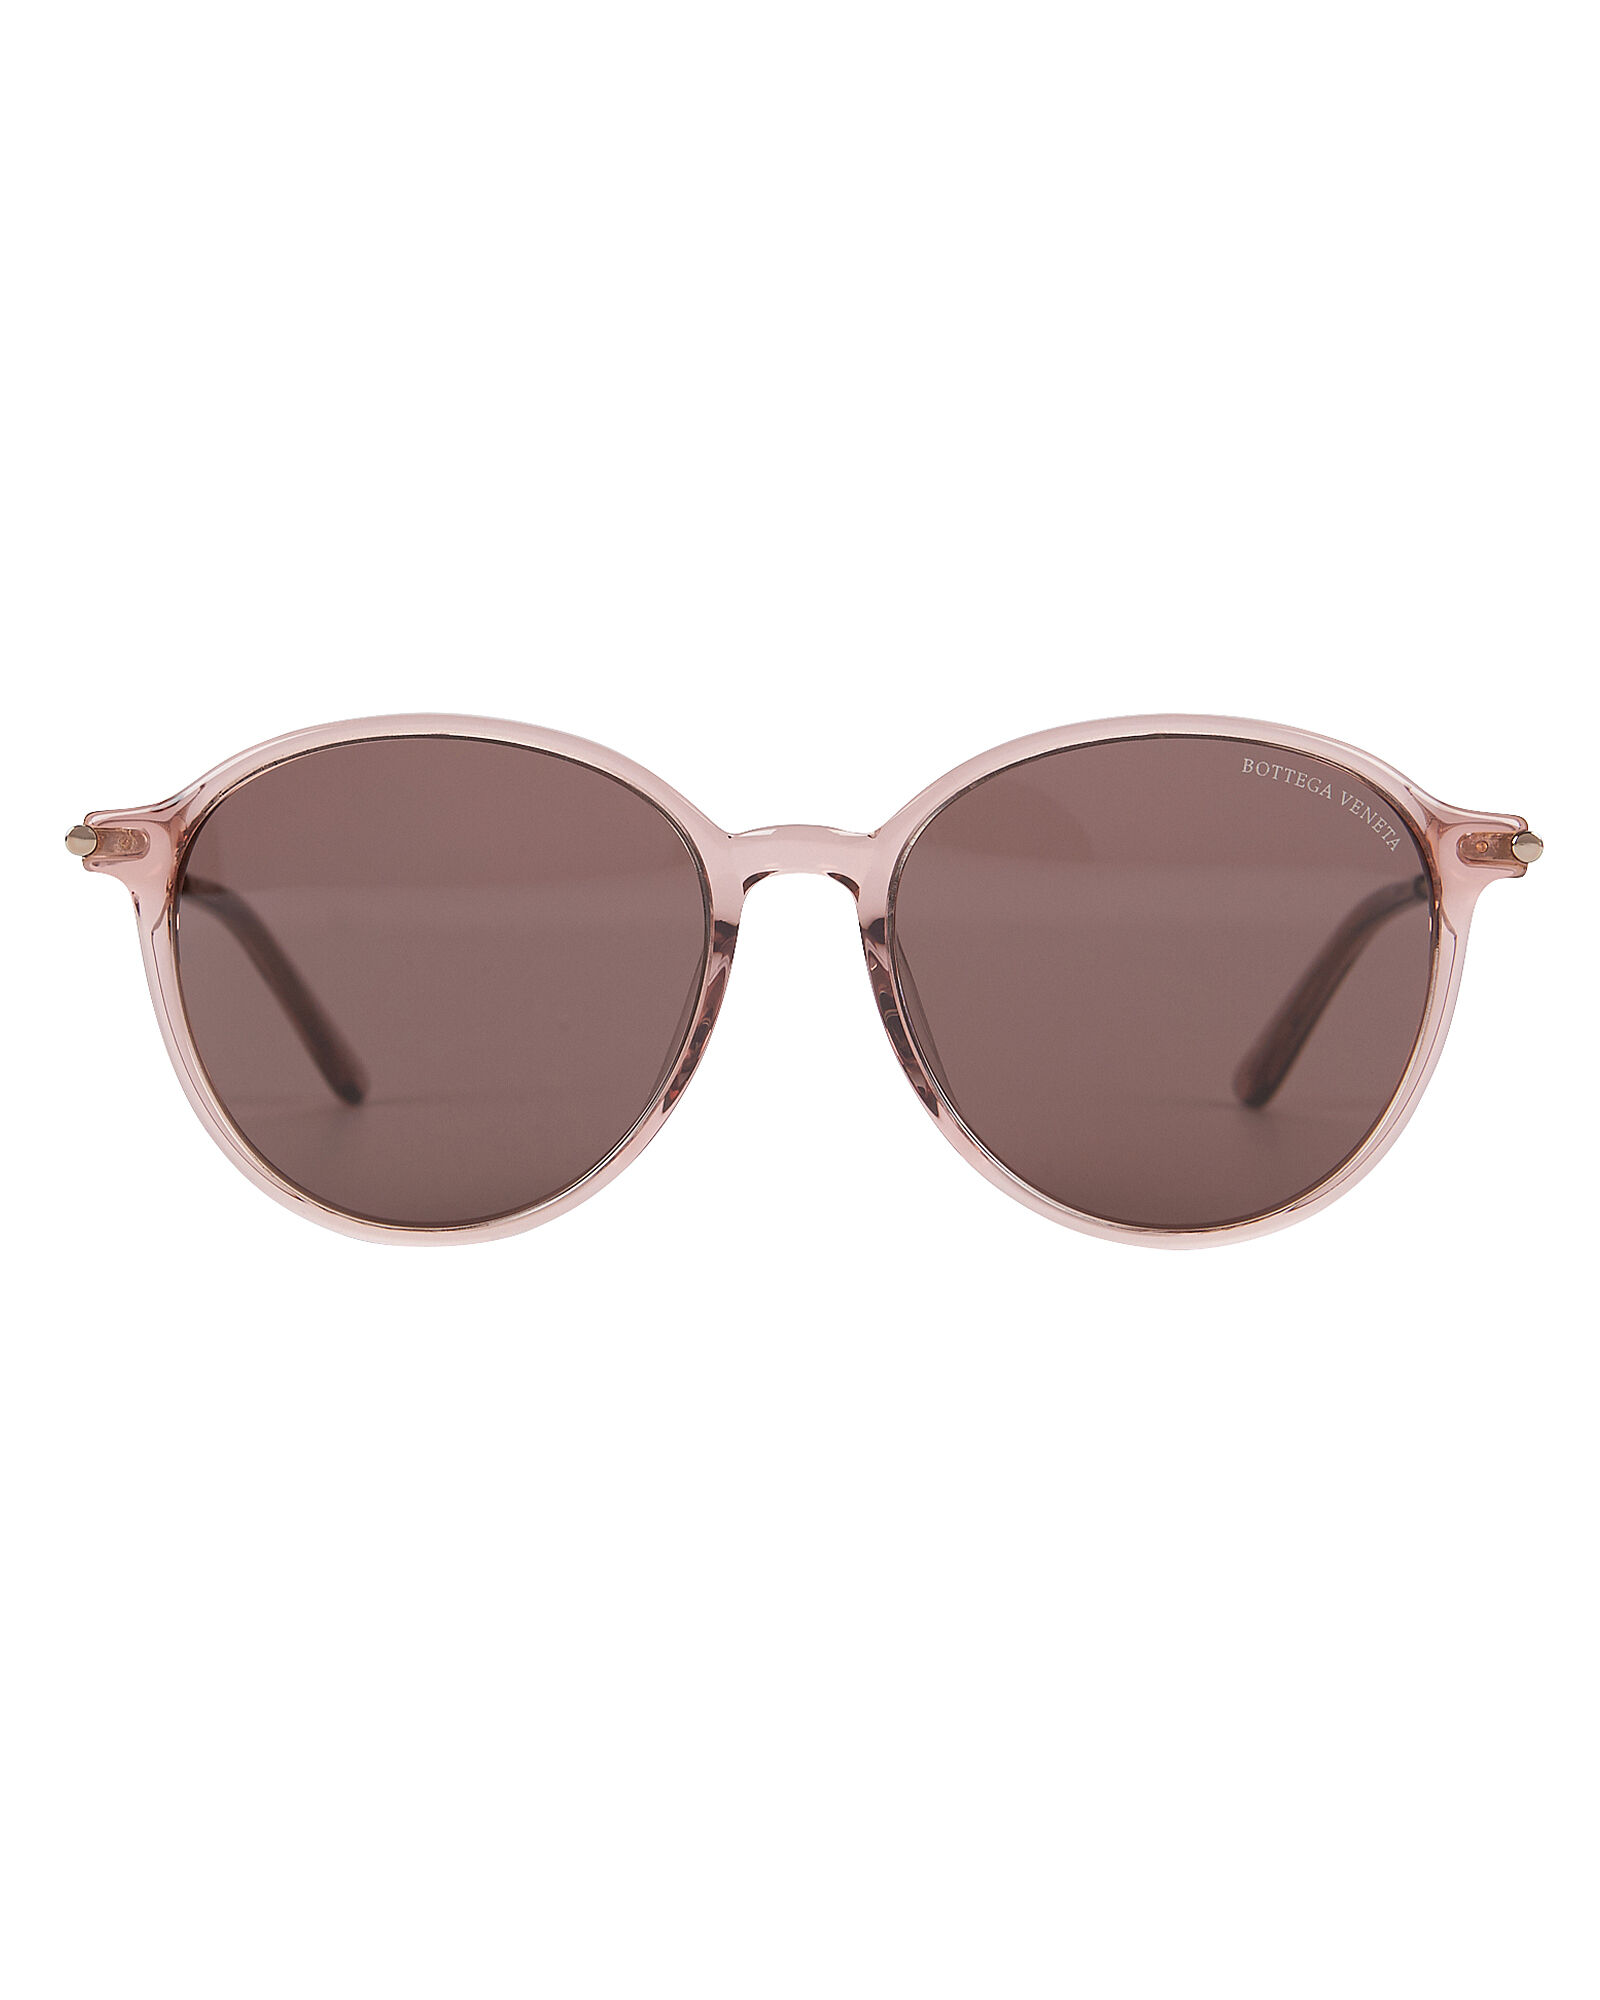 Oversized Rounded Sunglasses, PINK, hi-res